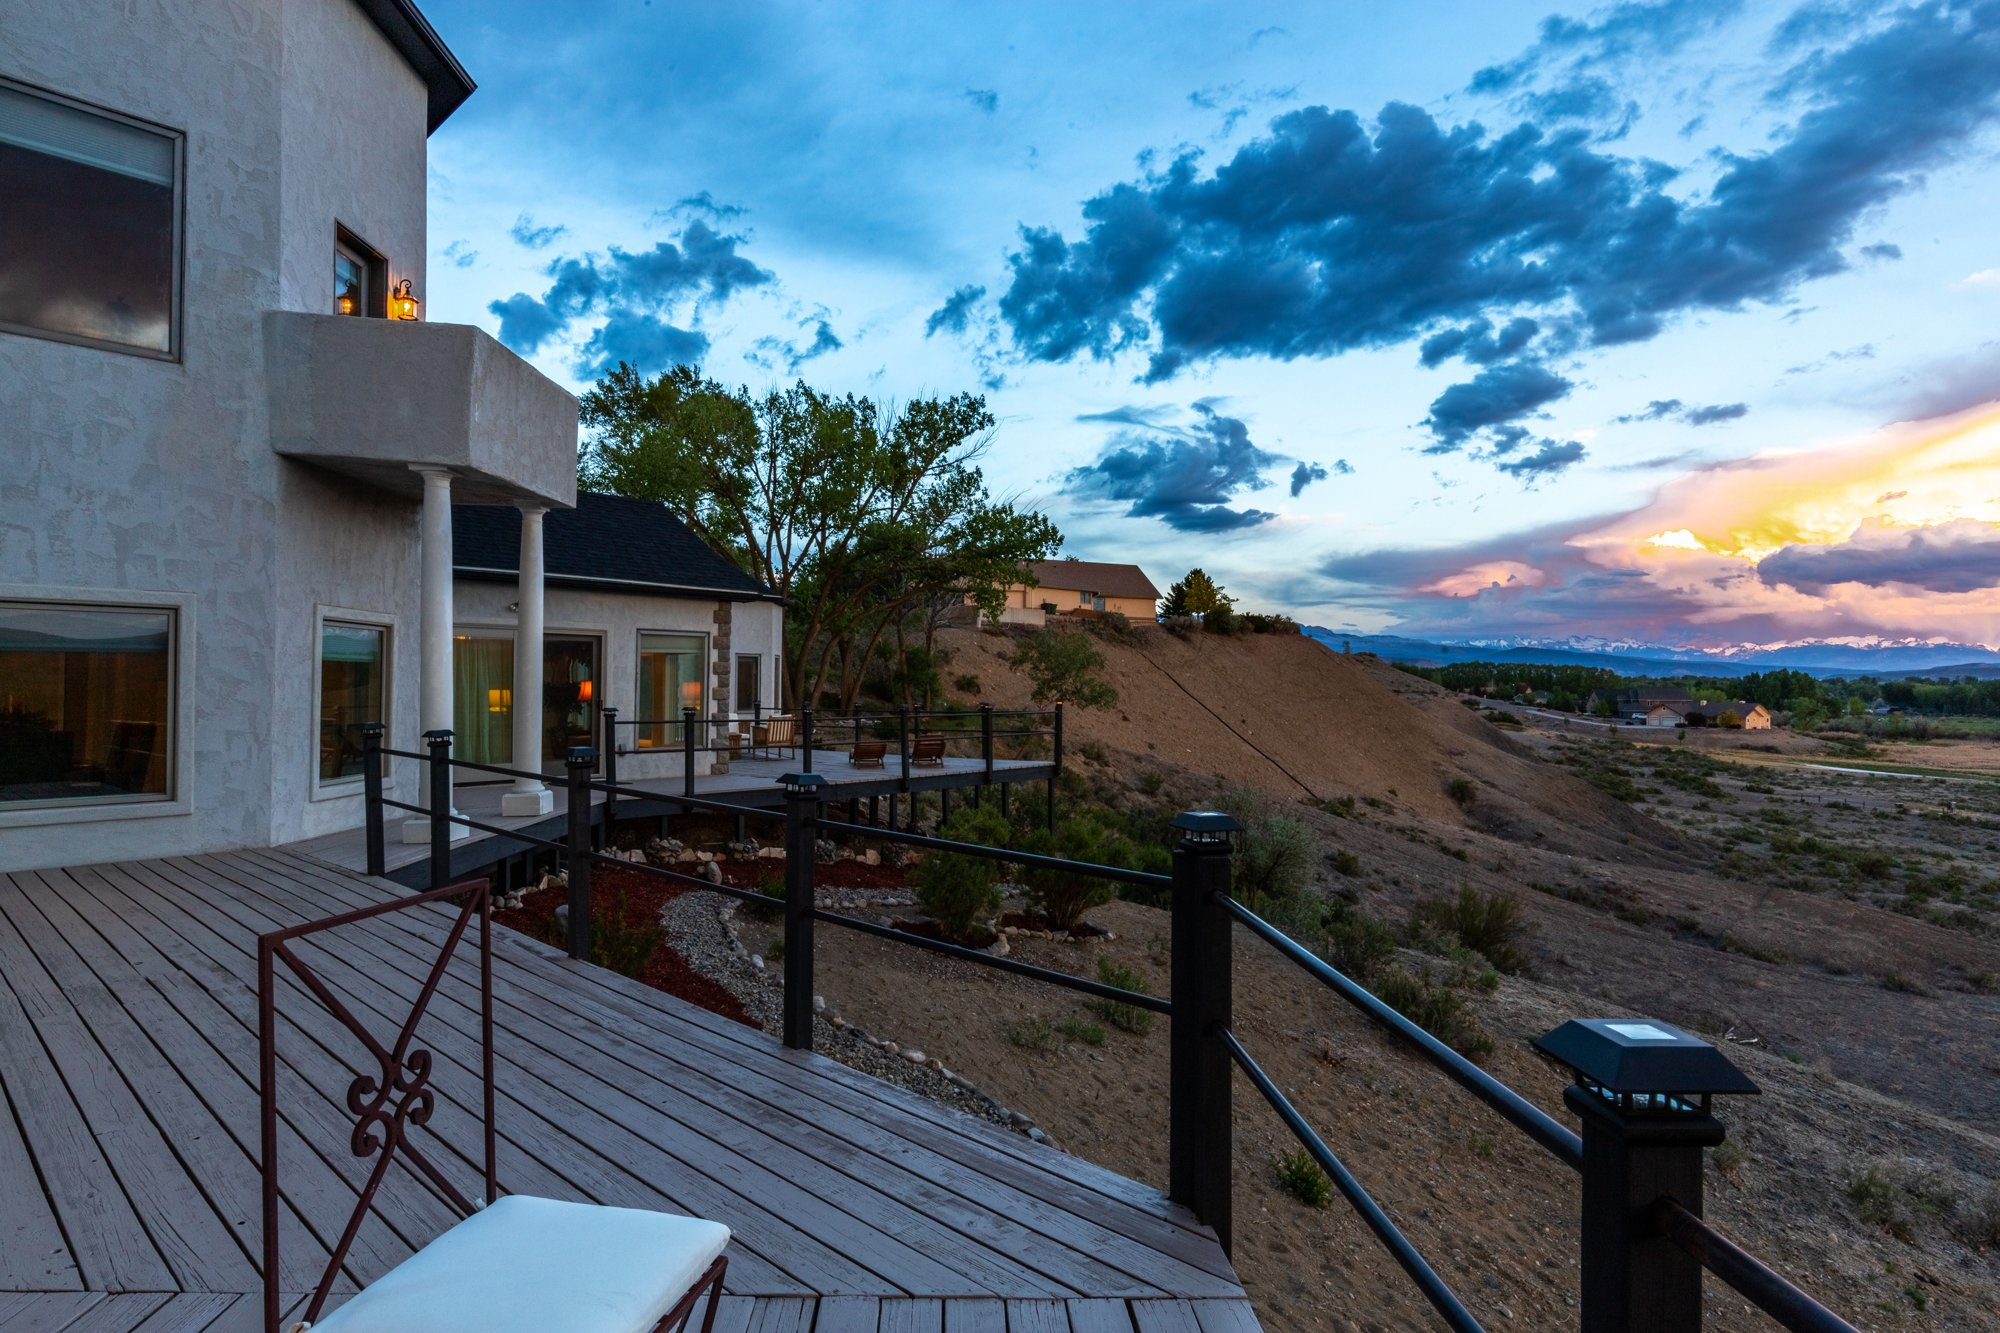 Sunset Views From Deck - 16955 Wildwood Dr. Montrose, CO 81403 - Atha Team Luxury Real Estate